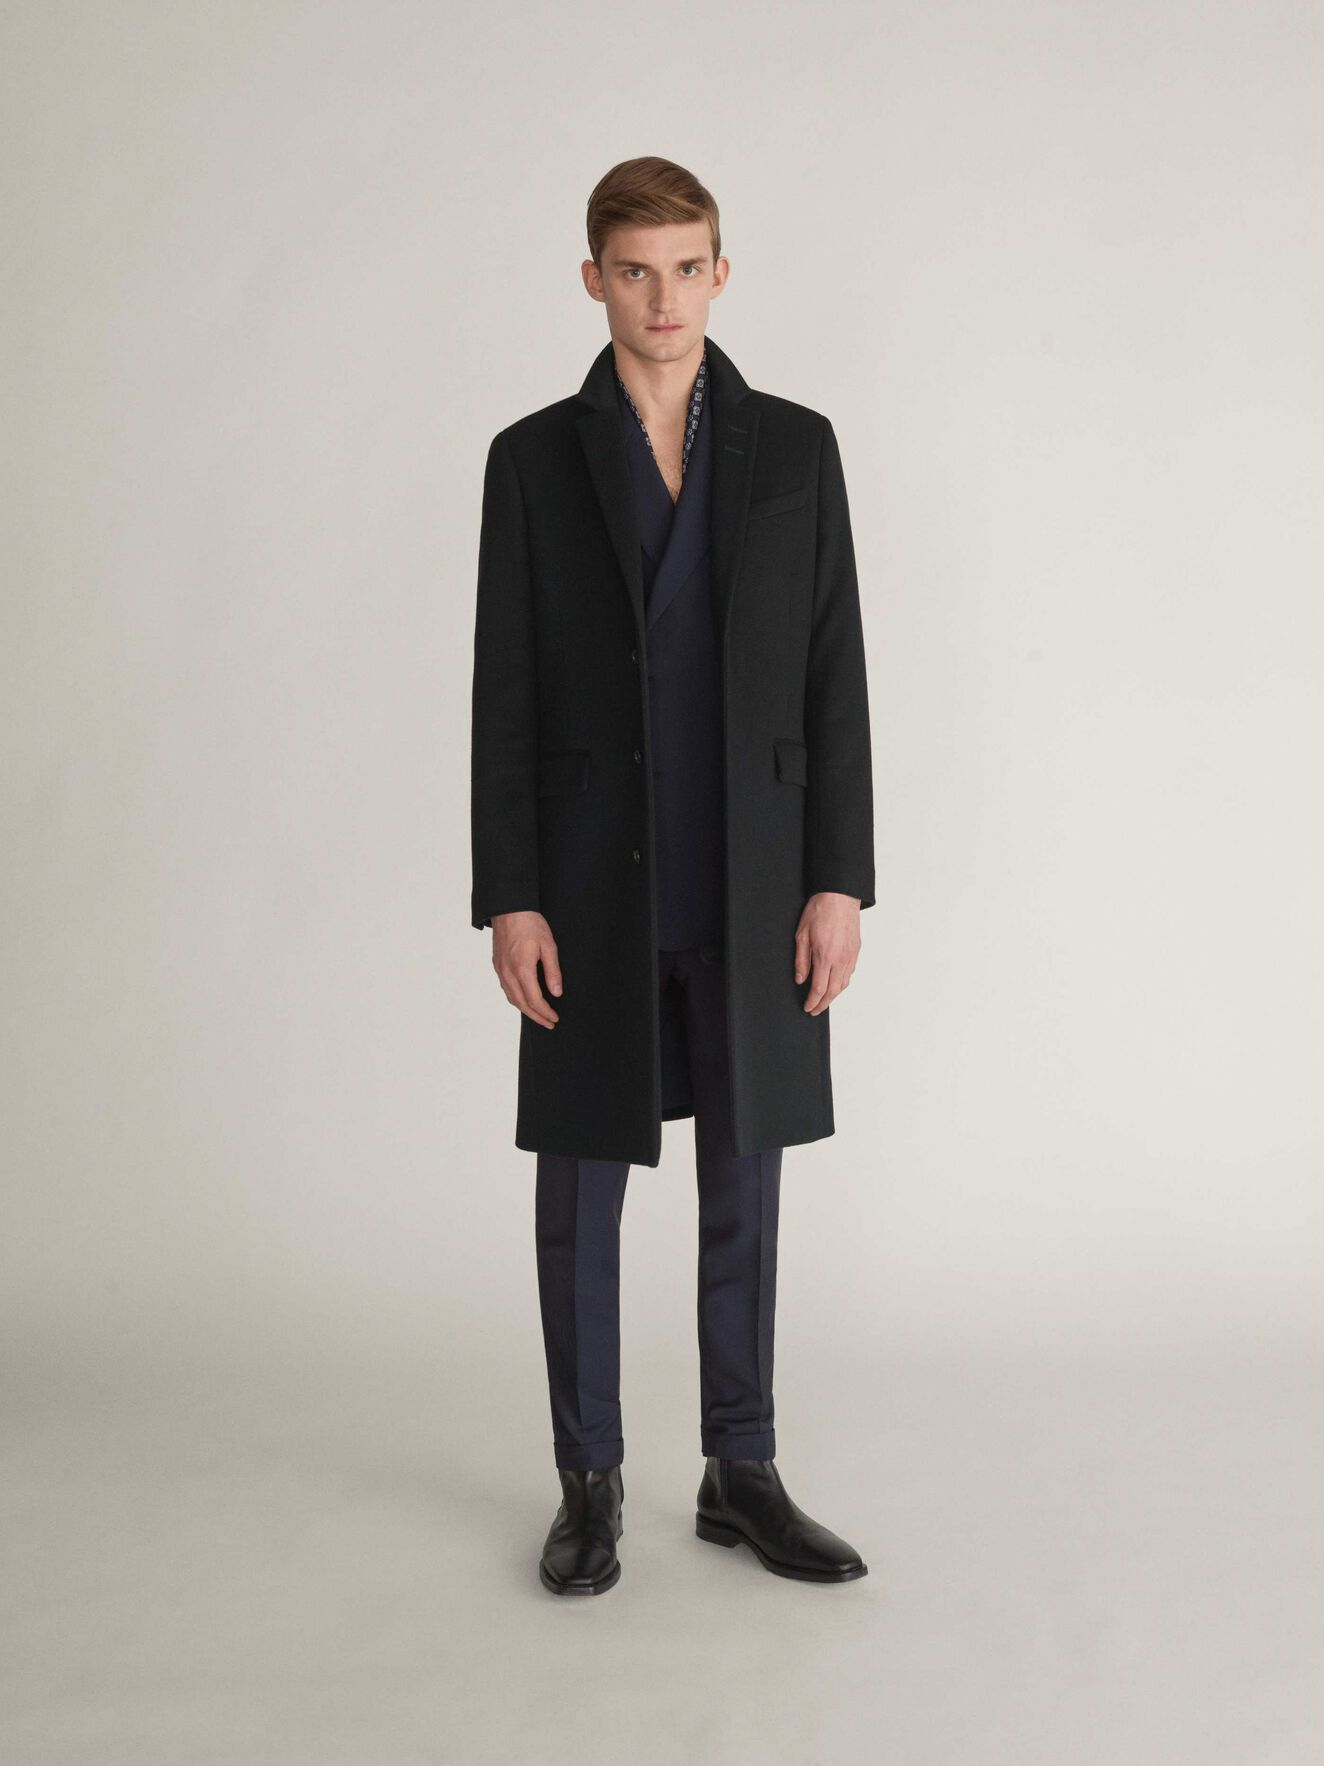 Coltmar Coat in Black from Tiger of Sweden